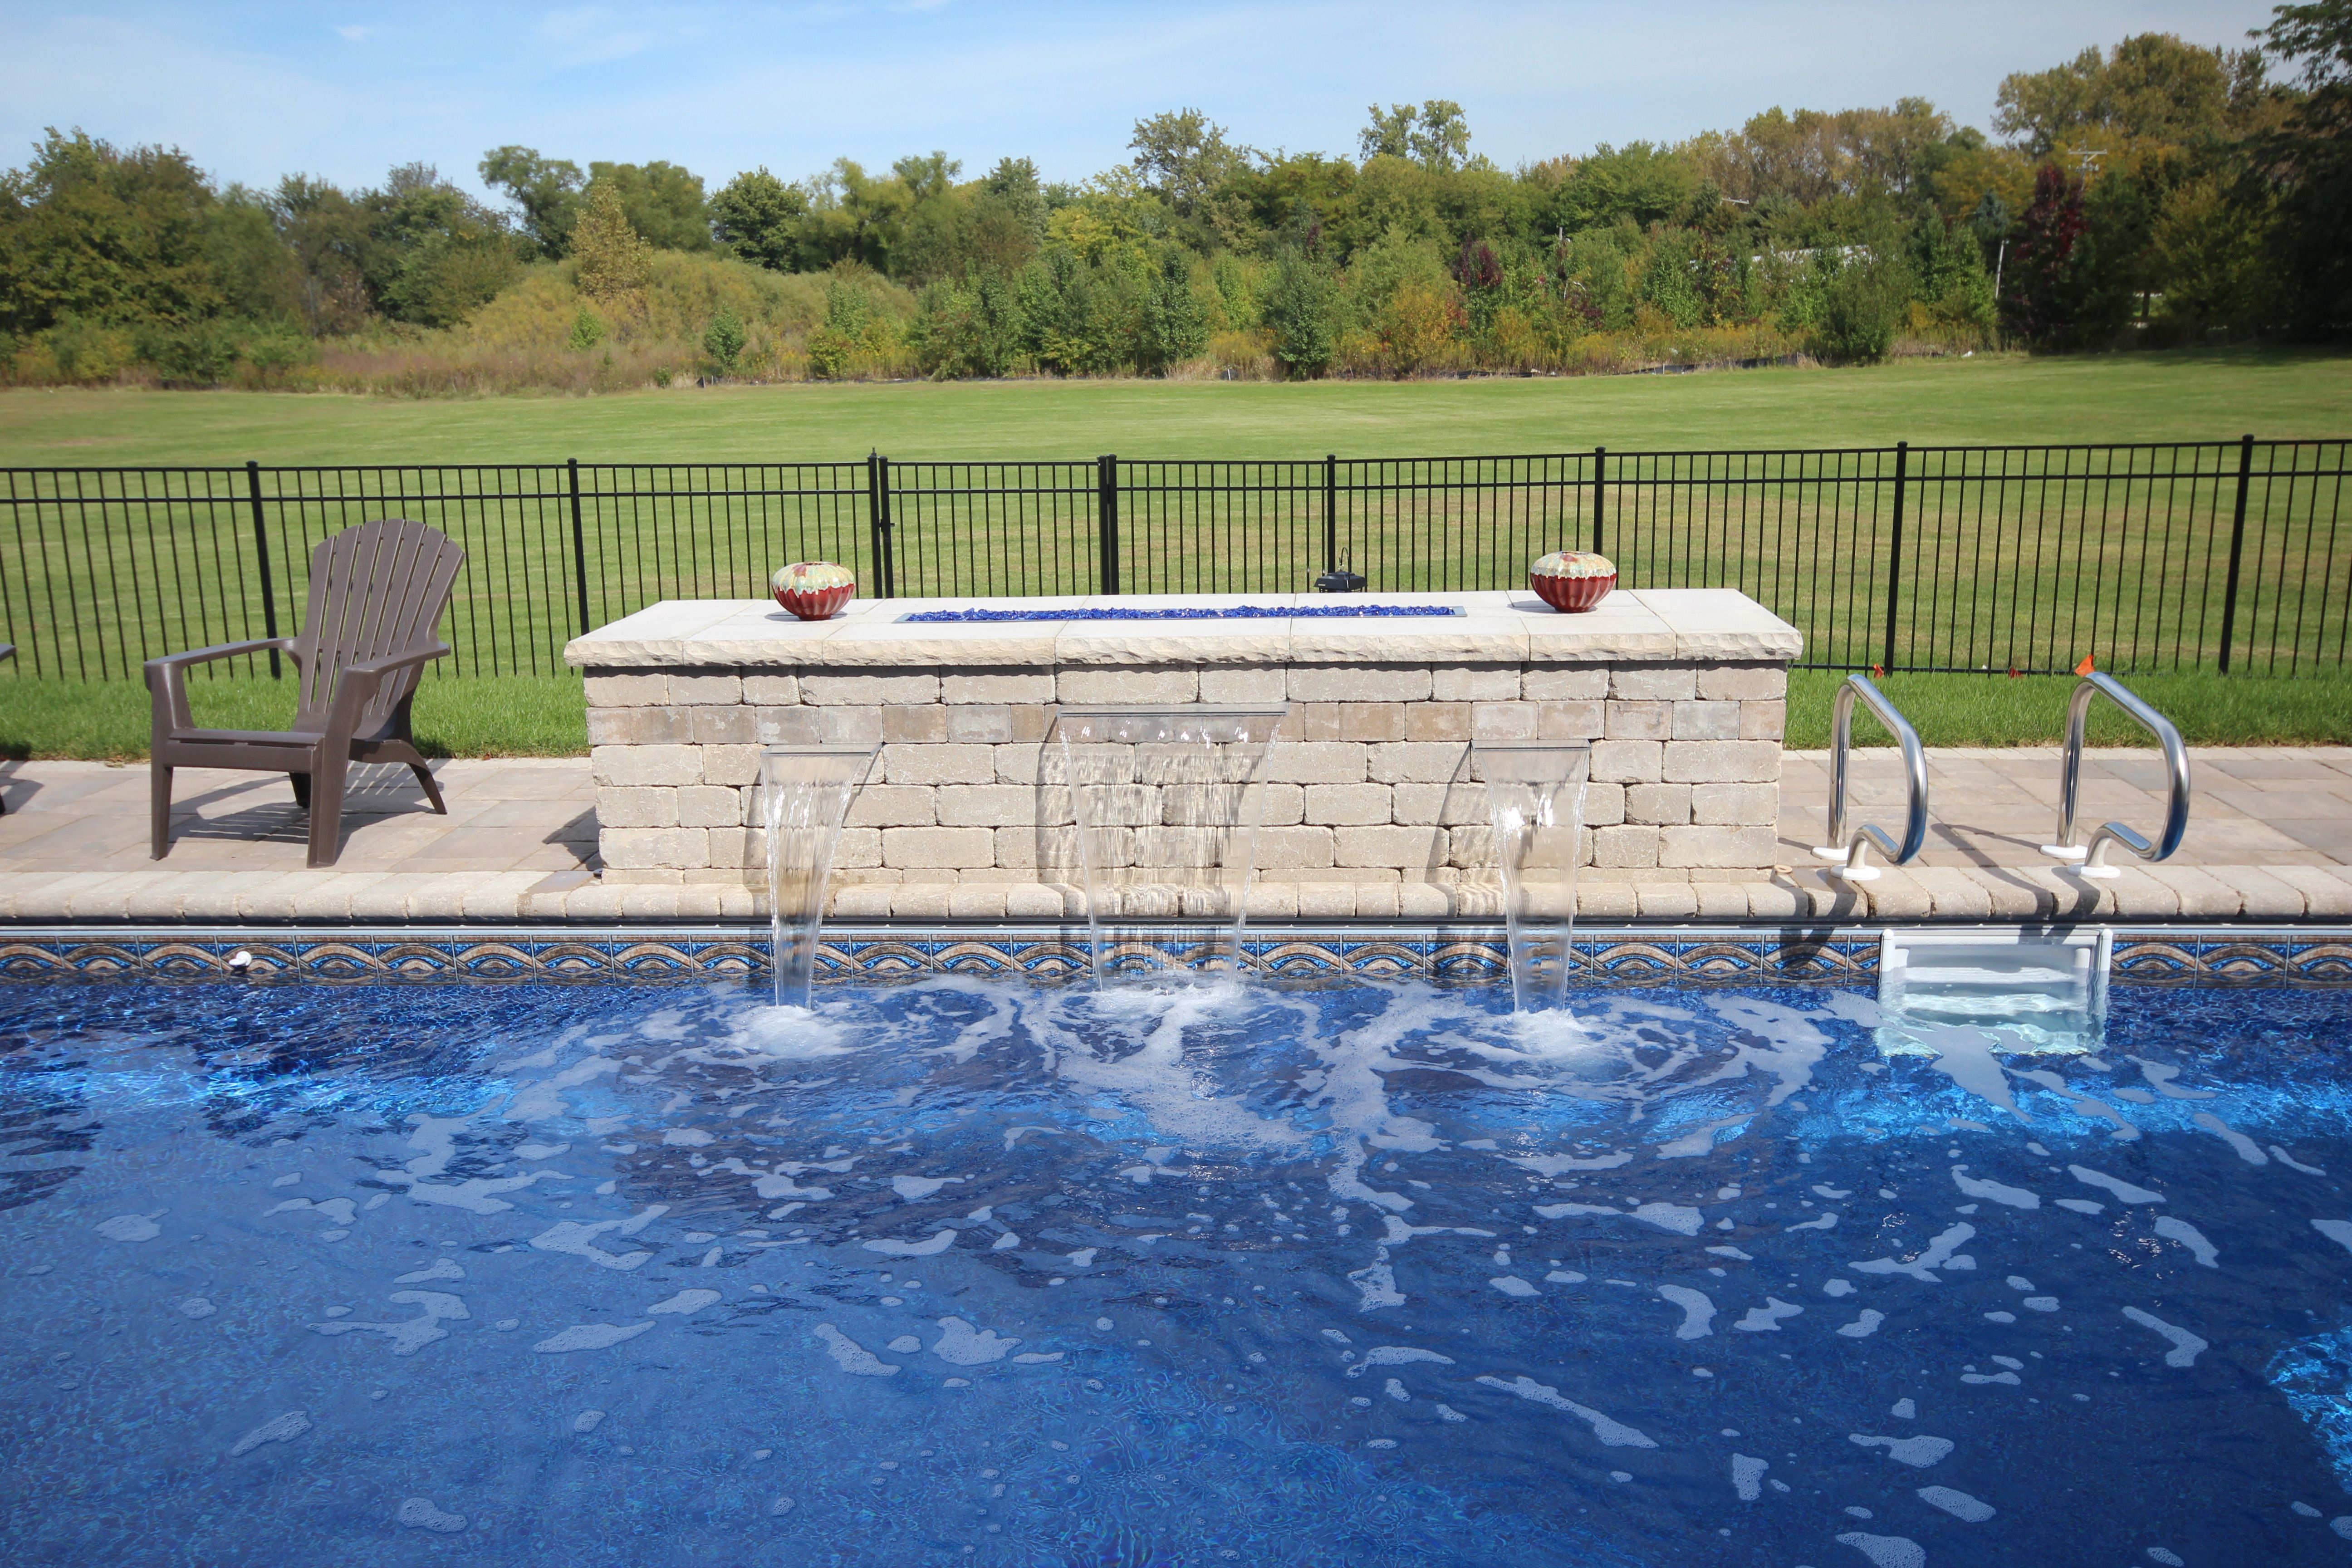 This Is A 15 X 32 Rectangle With Polymer Walls And A Vinyl Liner The Pool Includes A Coverstar Automatic Pool Cover And F Pool Water Features Aqua Pools Pool